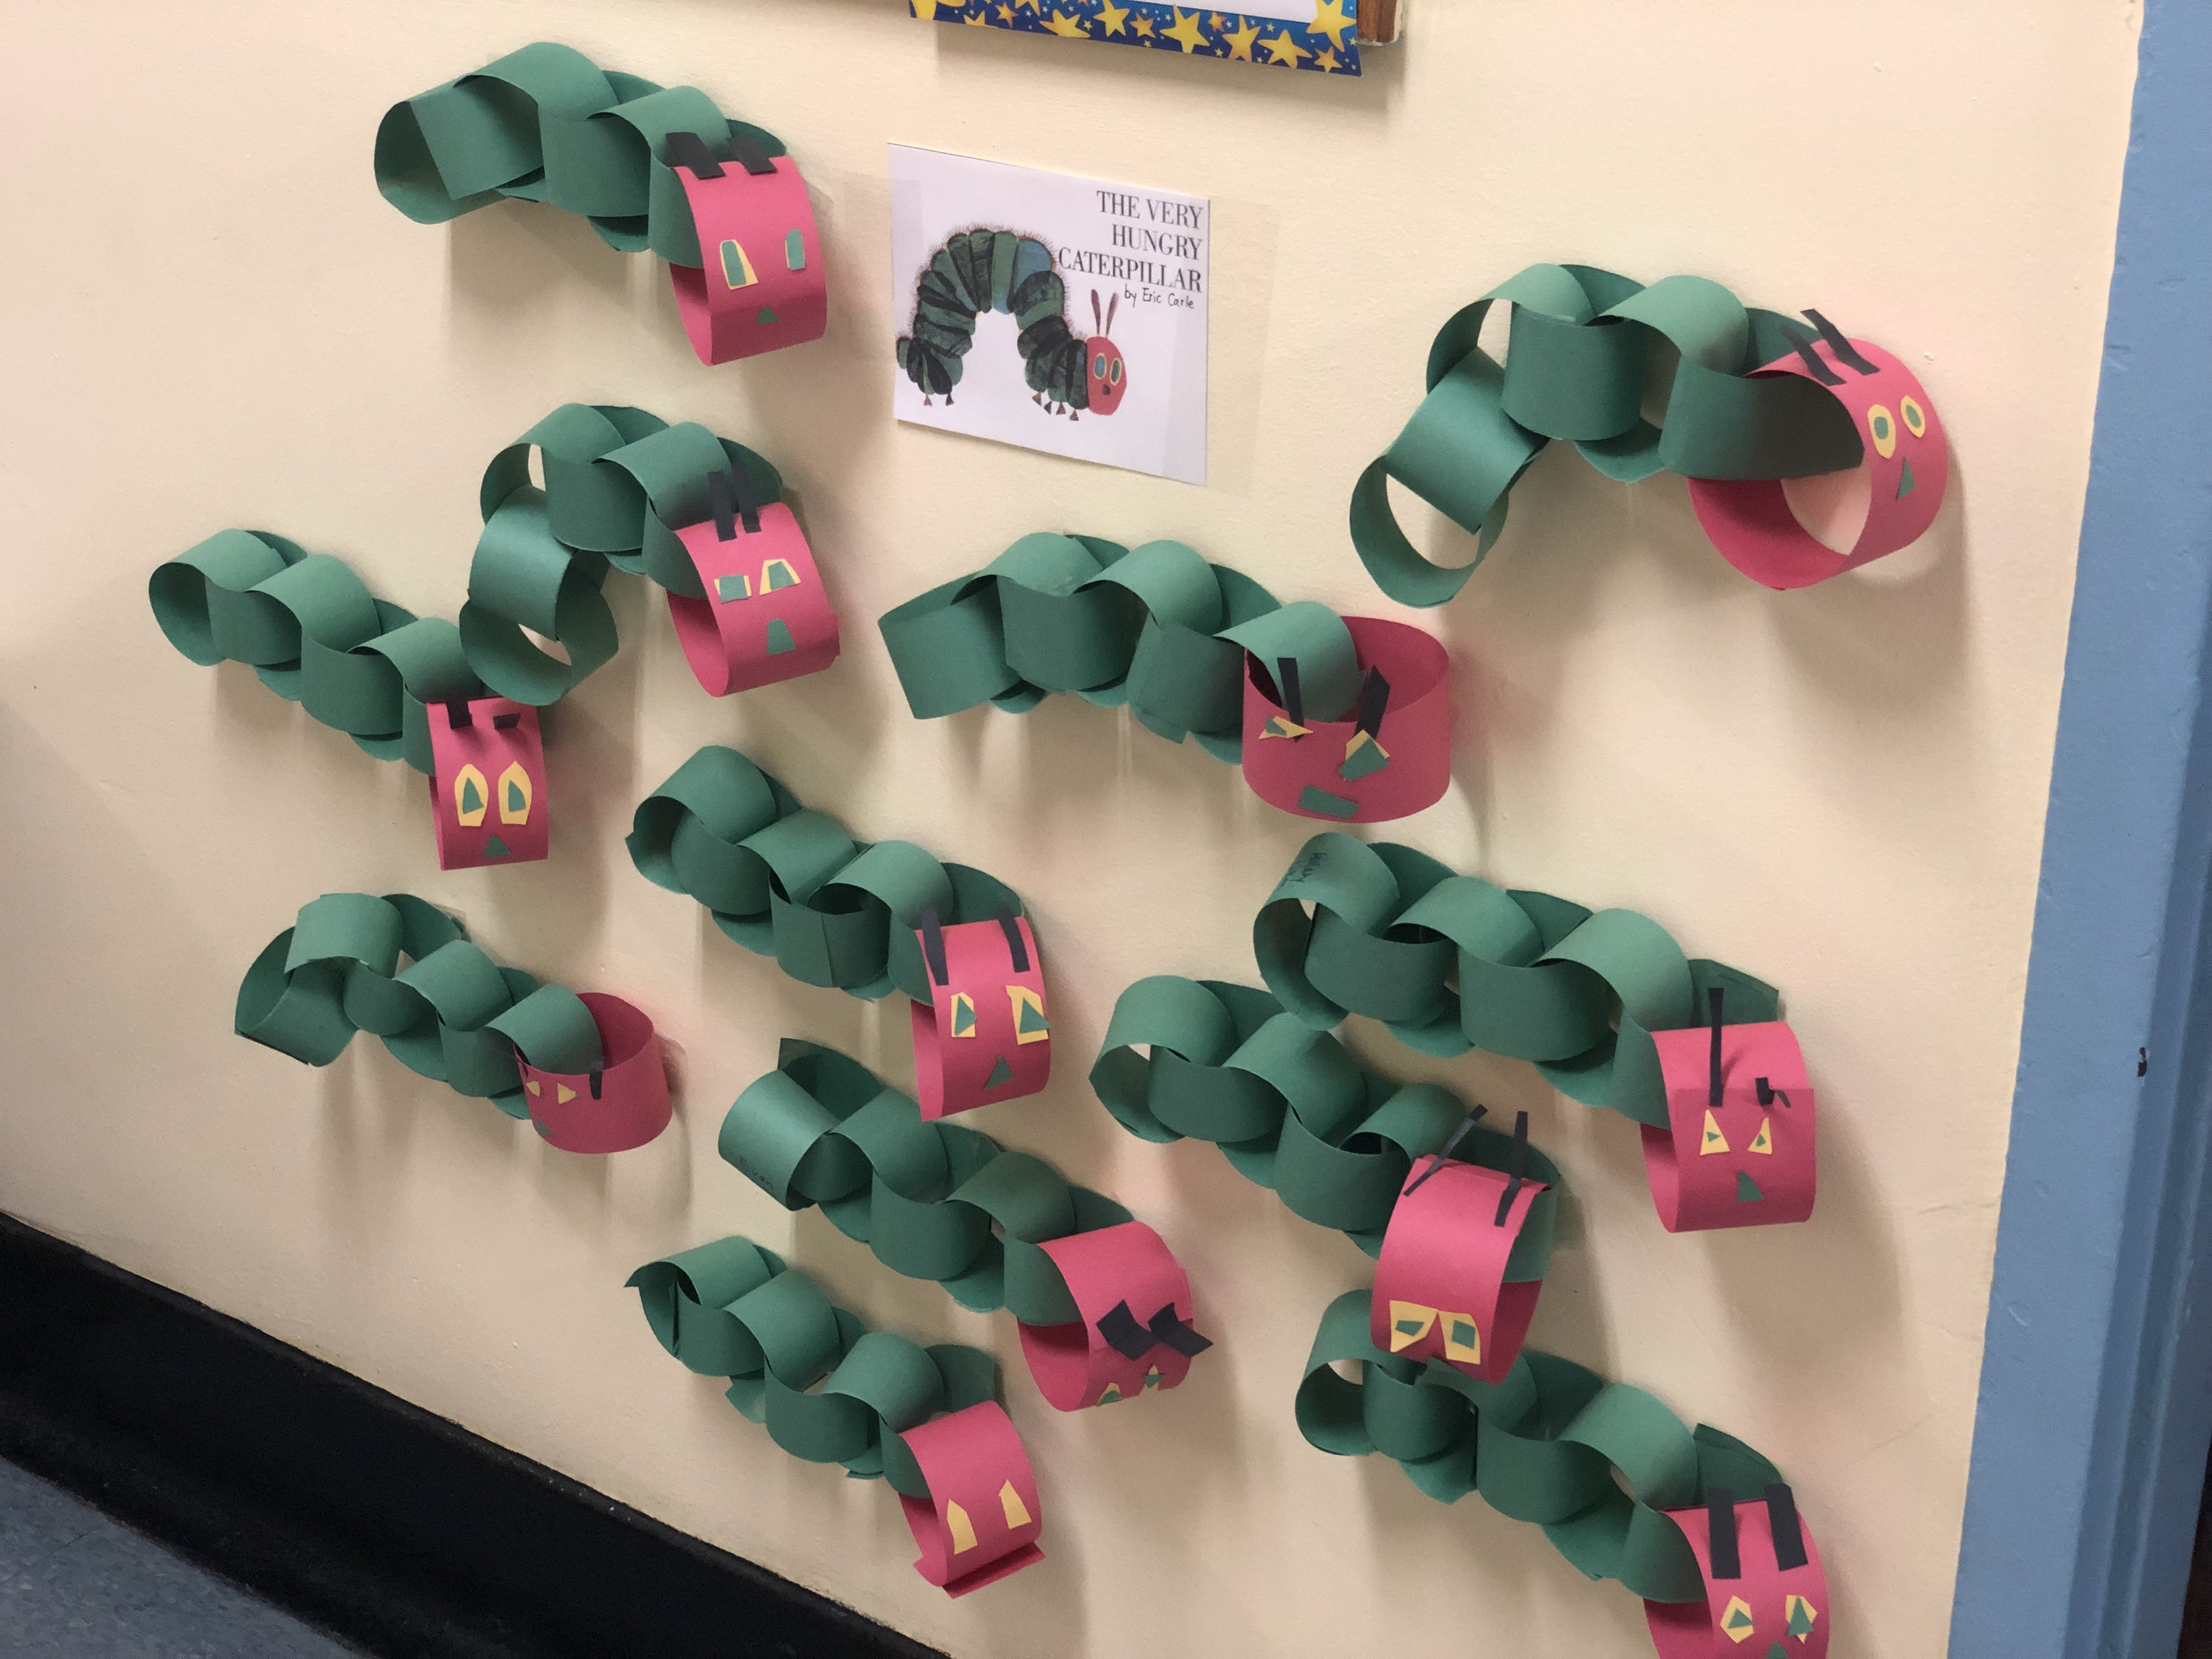 hungry caterpillar artwork by students